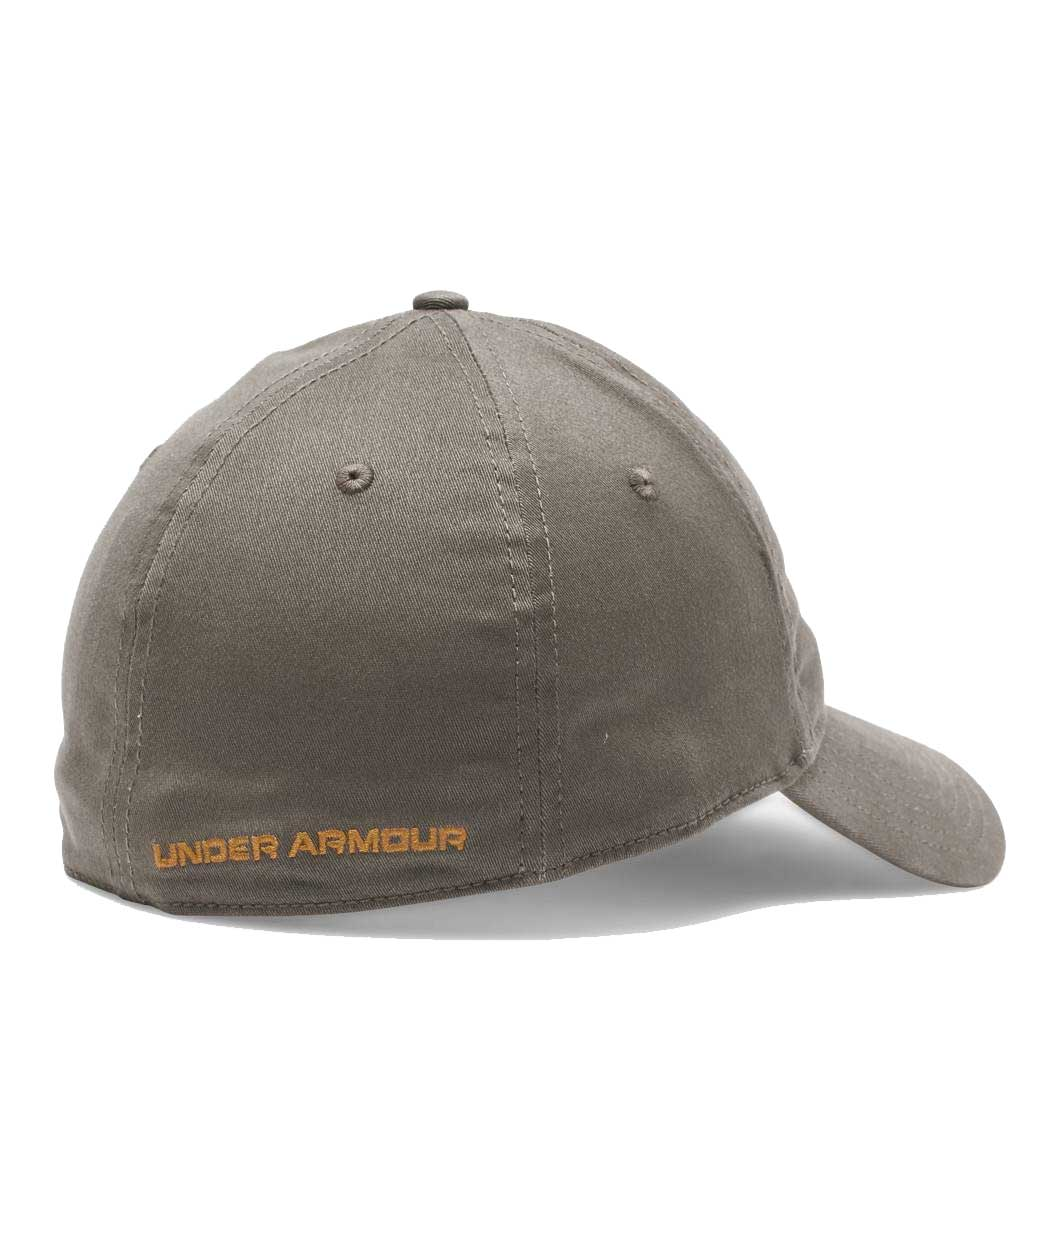 Under Armour Patch Stretch Fit Cap, Brown_2.jpg